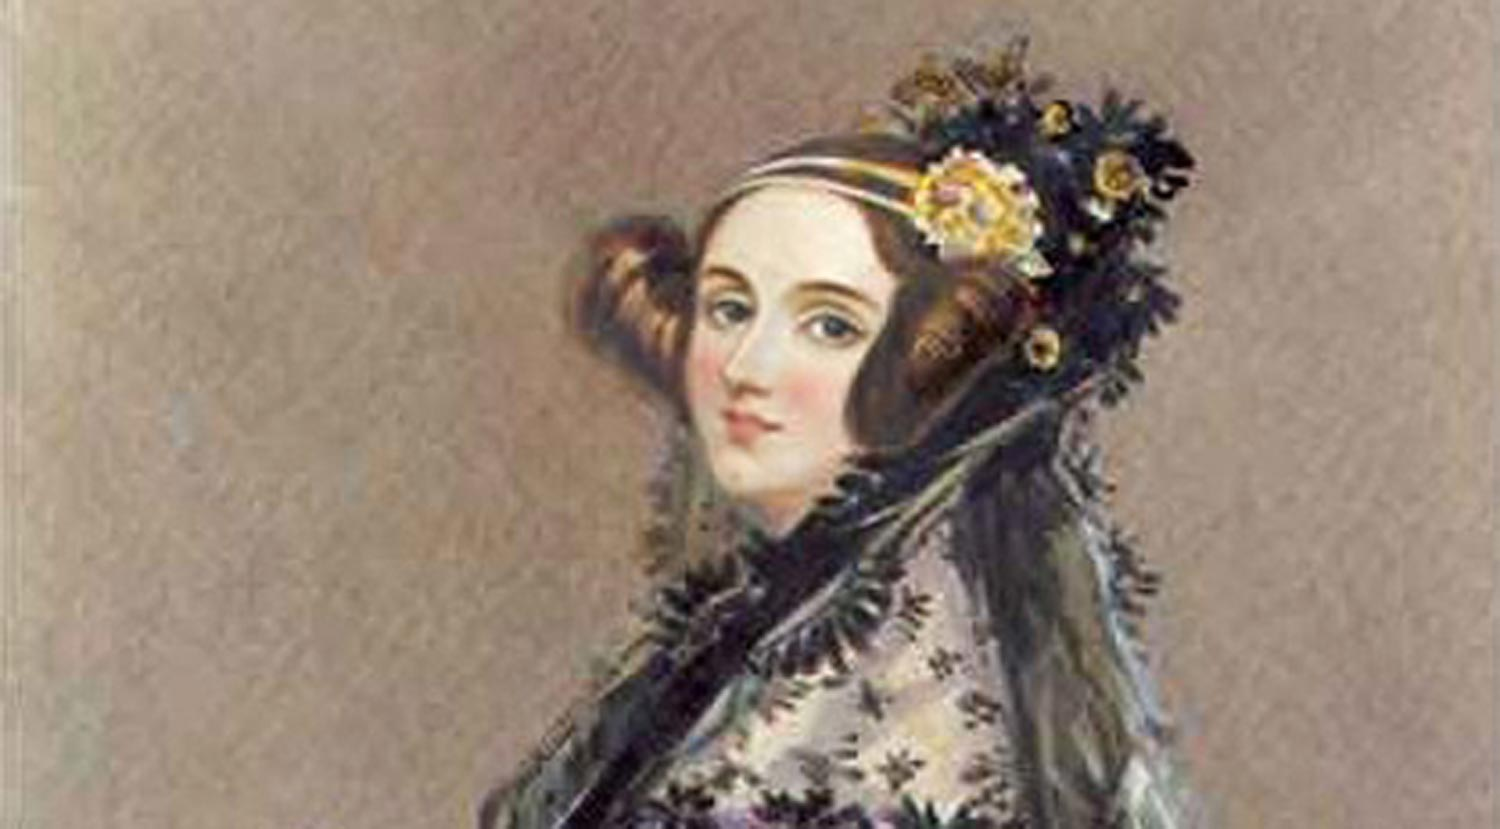 Pictures of lady ada lovelace Ada Lovelace: The First Computer Programmer Mental Floss